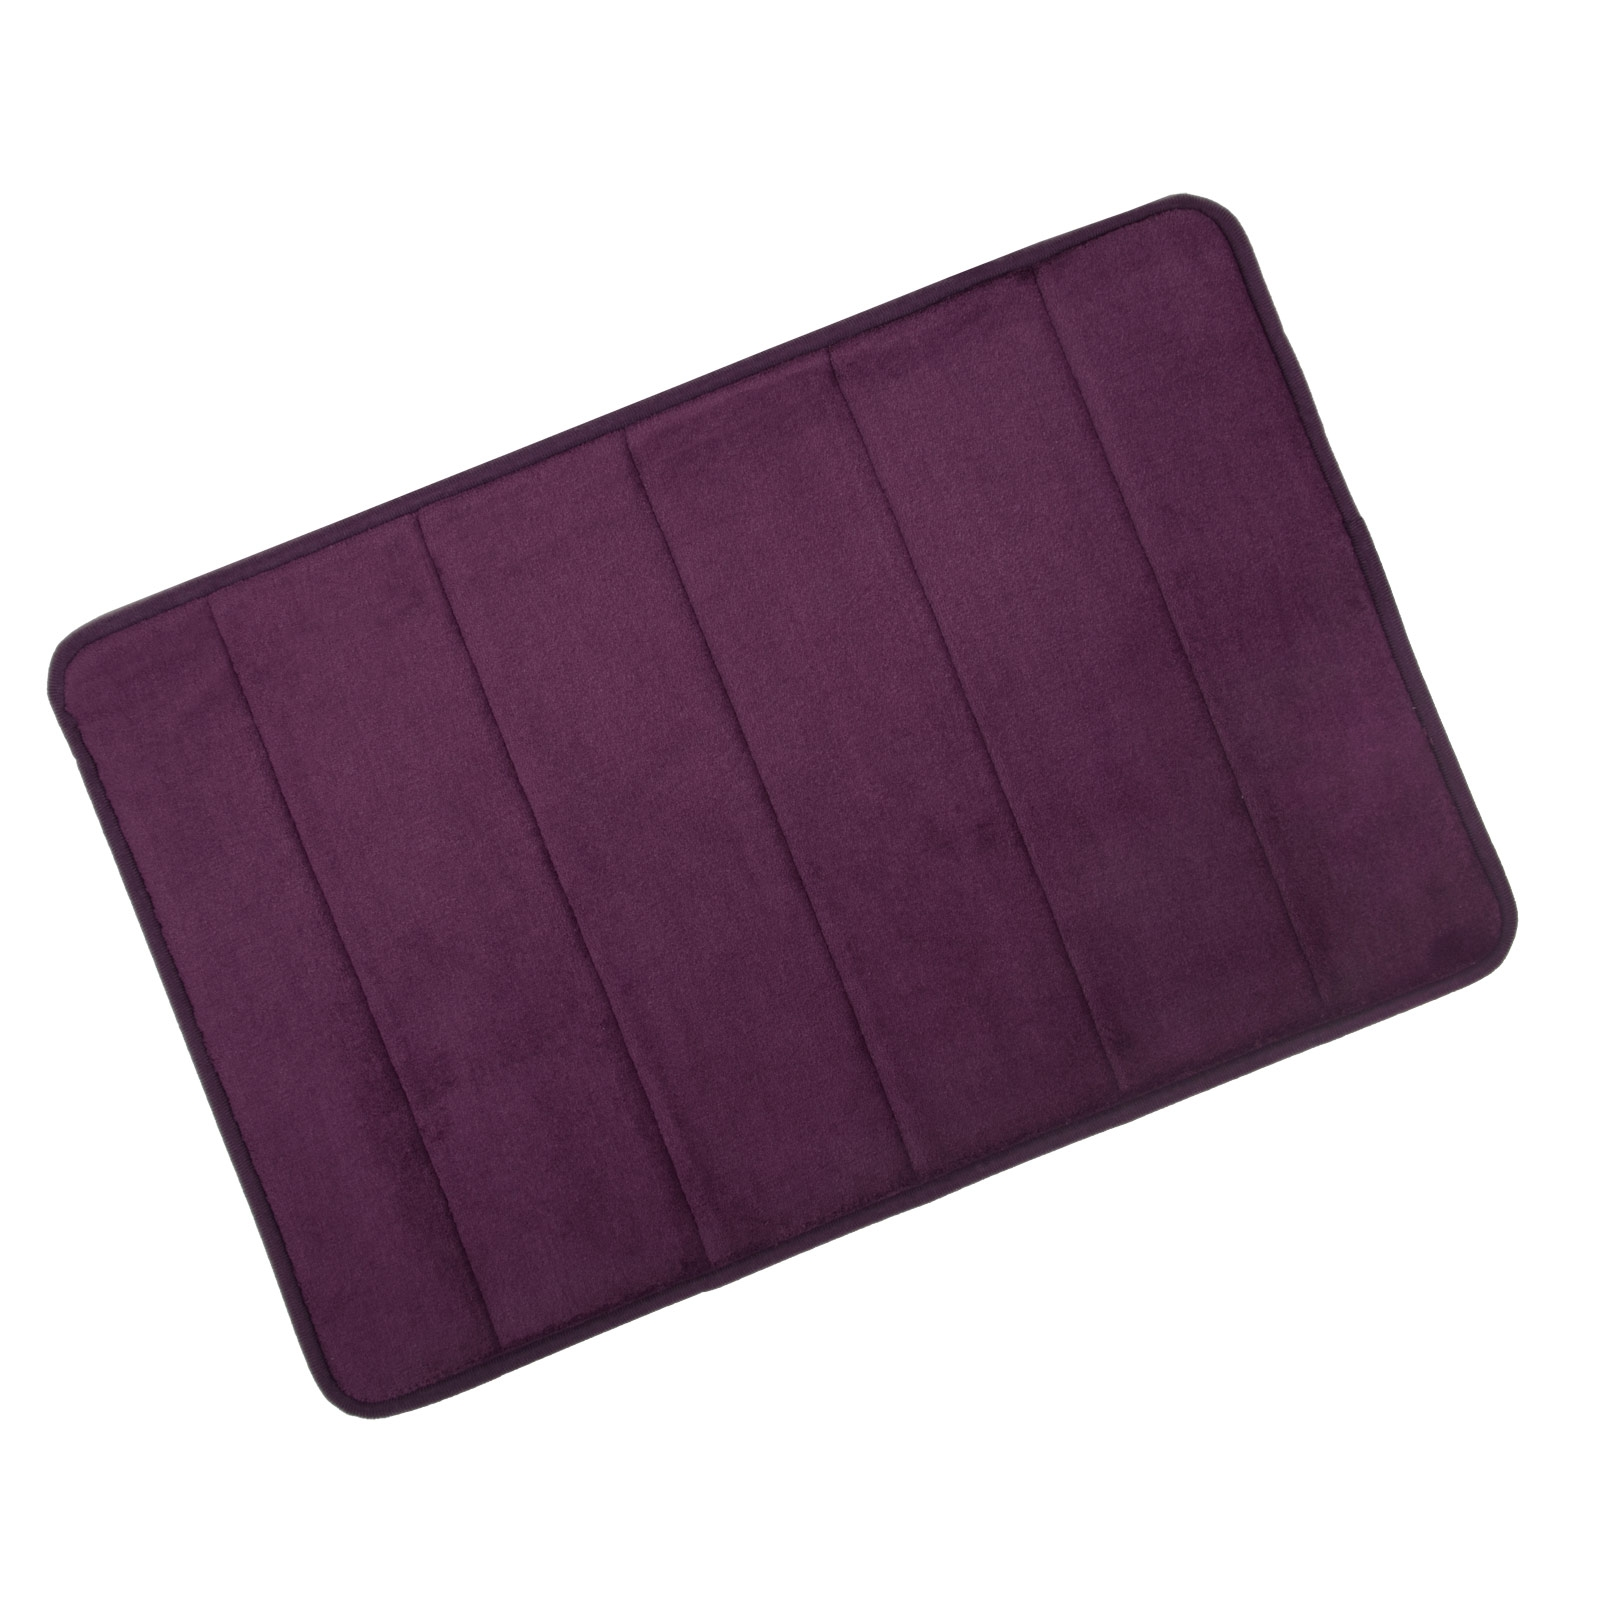 Large Plum Bath Mat